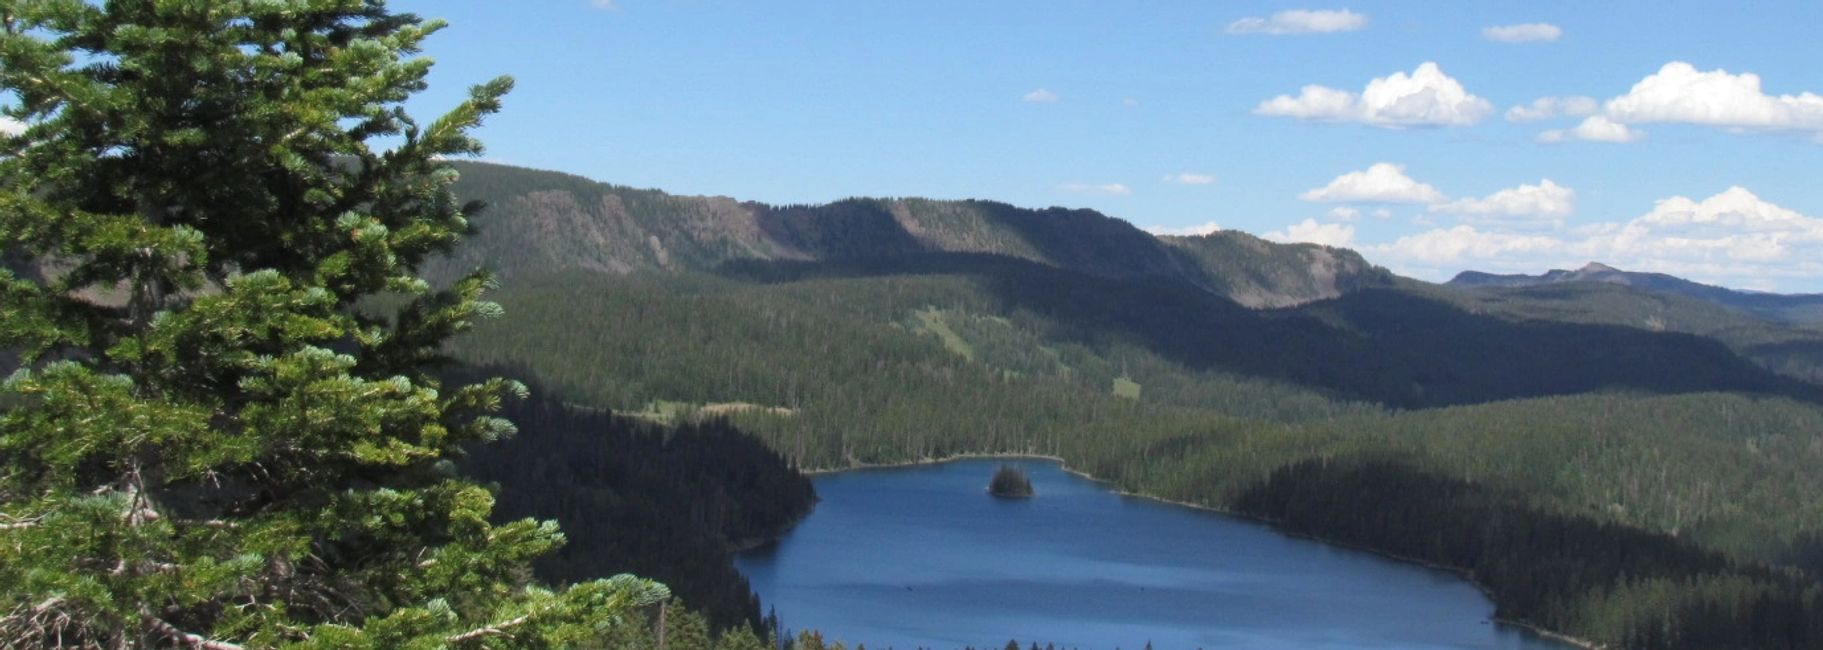 Island Lake on the Grand Mesa